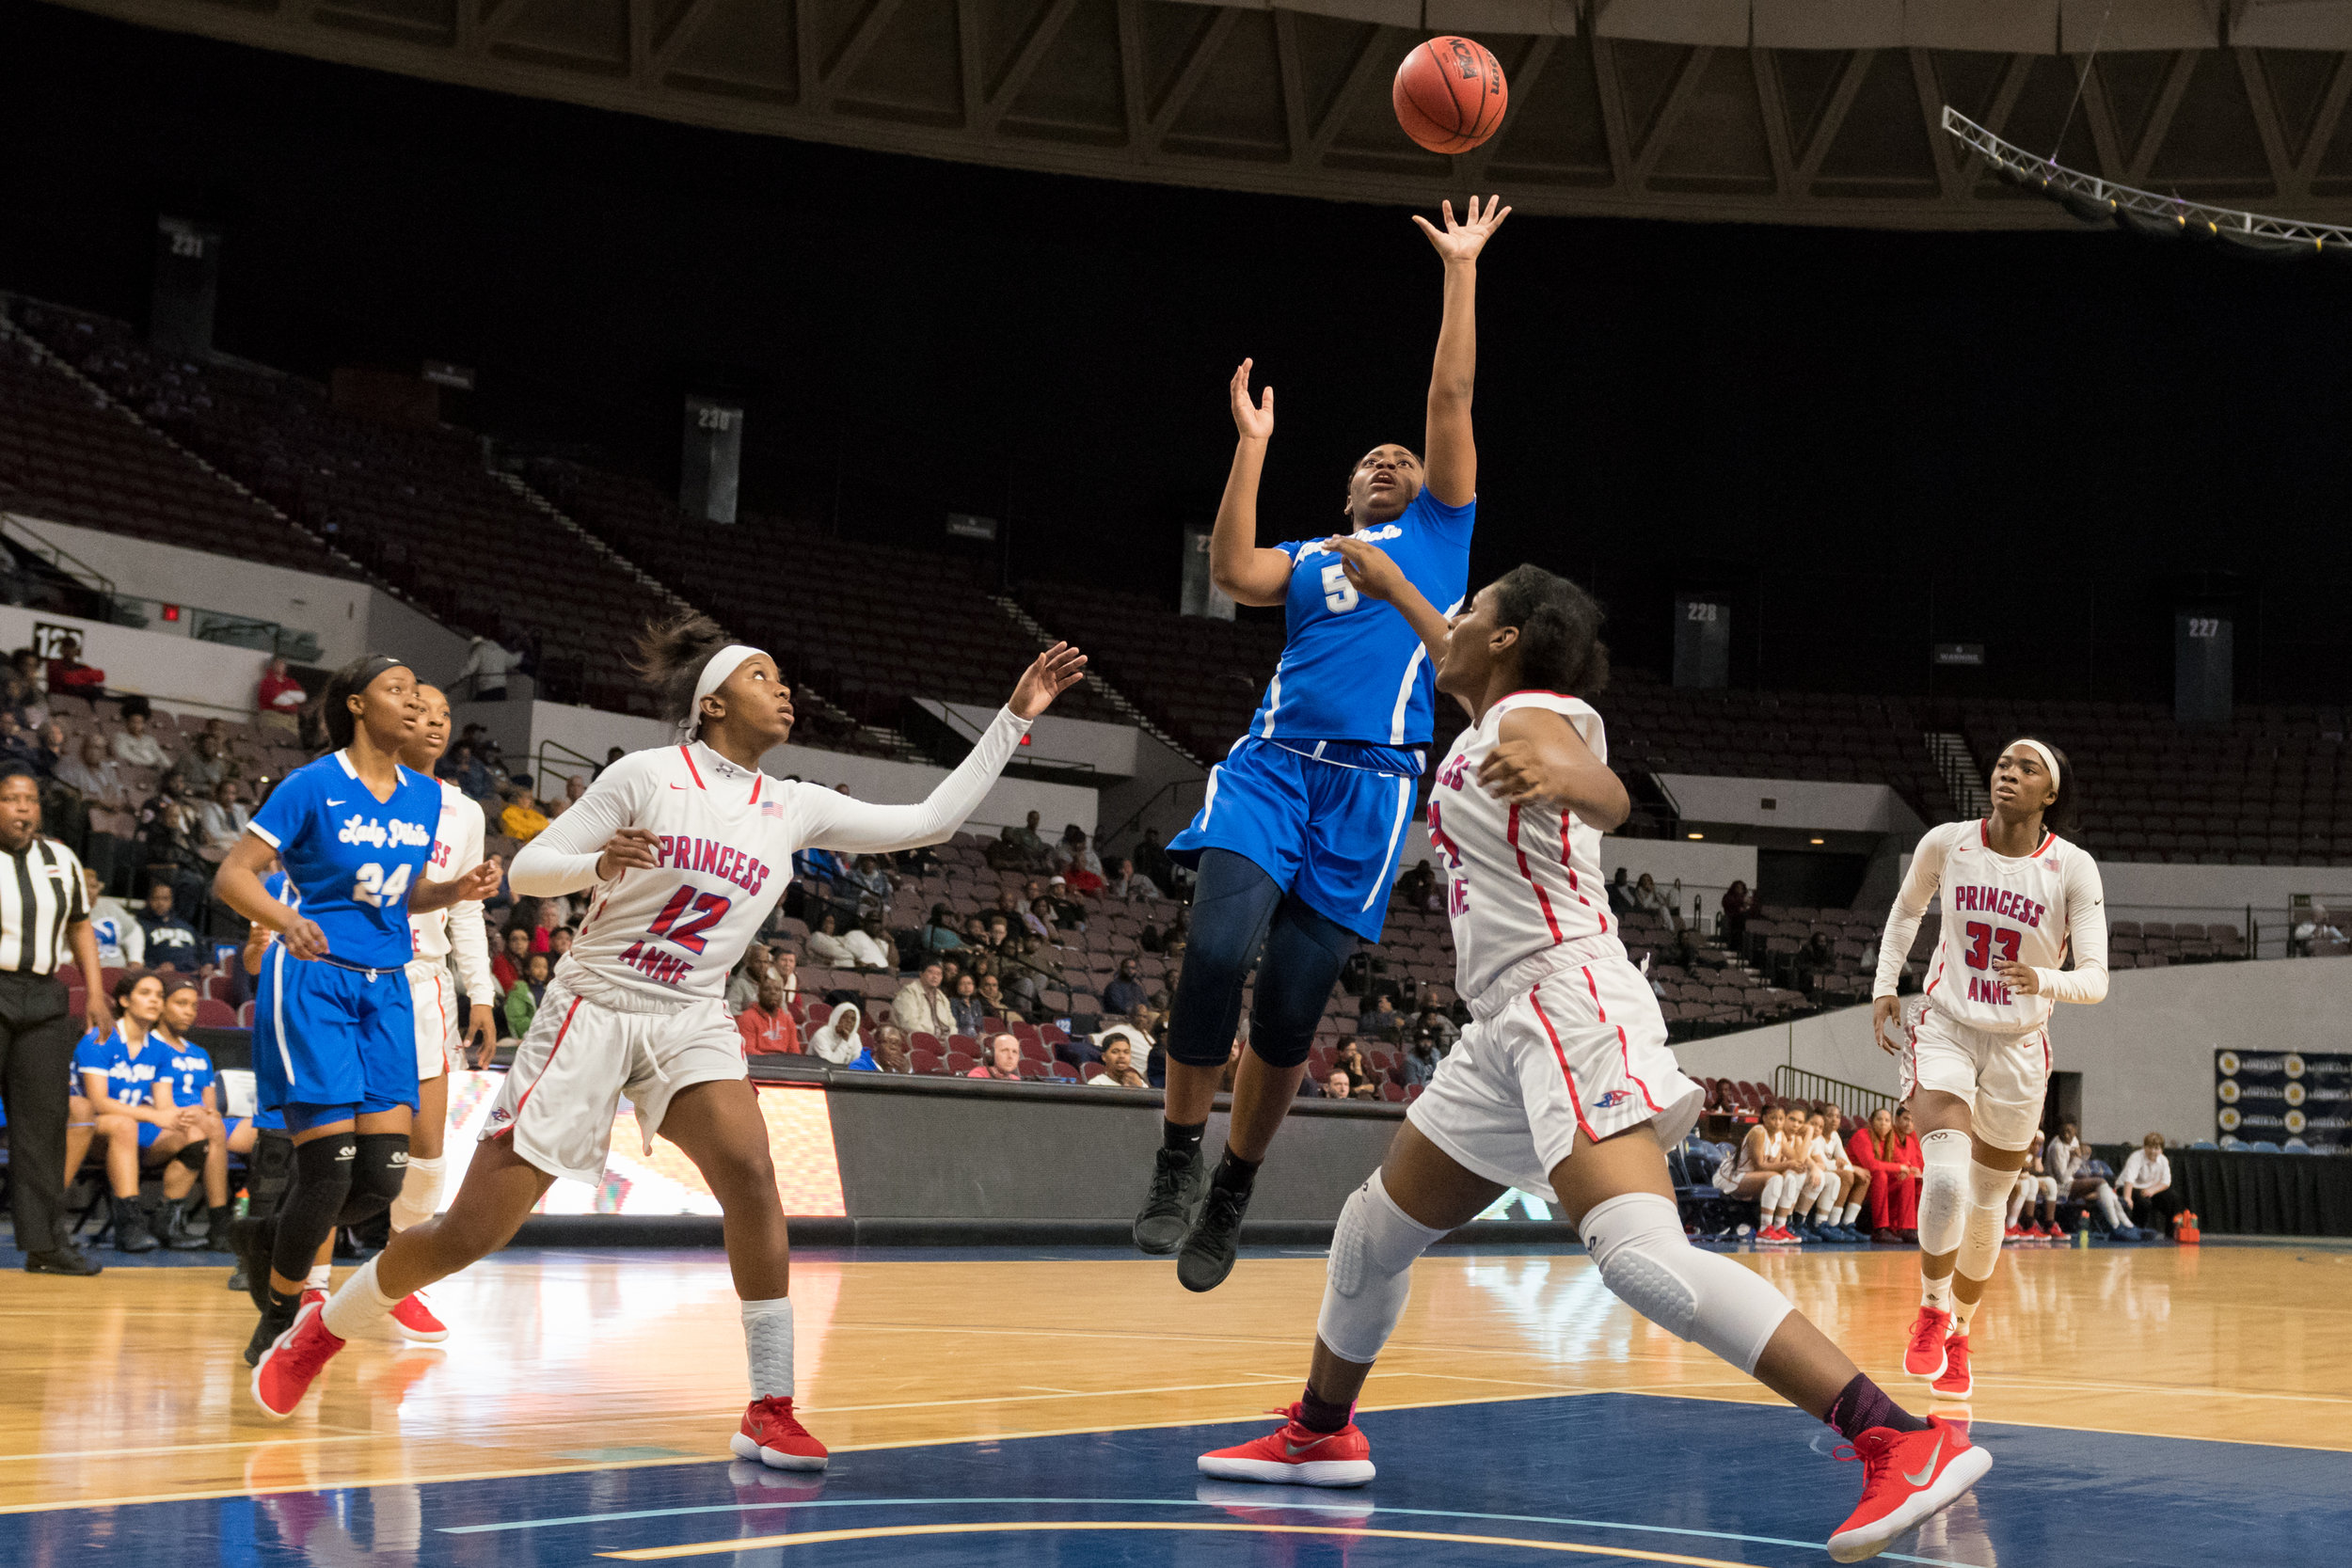 Norview's Janiya Gullibux goes up for a shot against Princess Anne's Bryonna Ferebee and Brianna Jackson during the Region 5A Championship game held Monday, February 26, 2018 at the Norfolk Scope. Princess Anne defeated Norview 61 to 40.